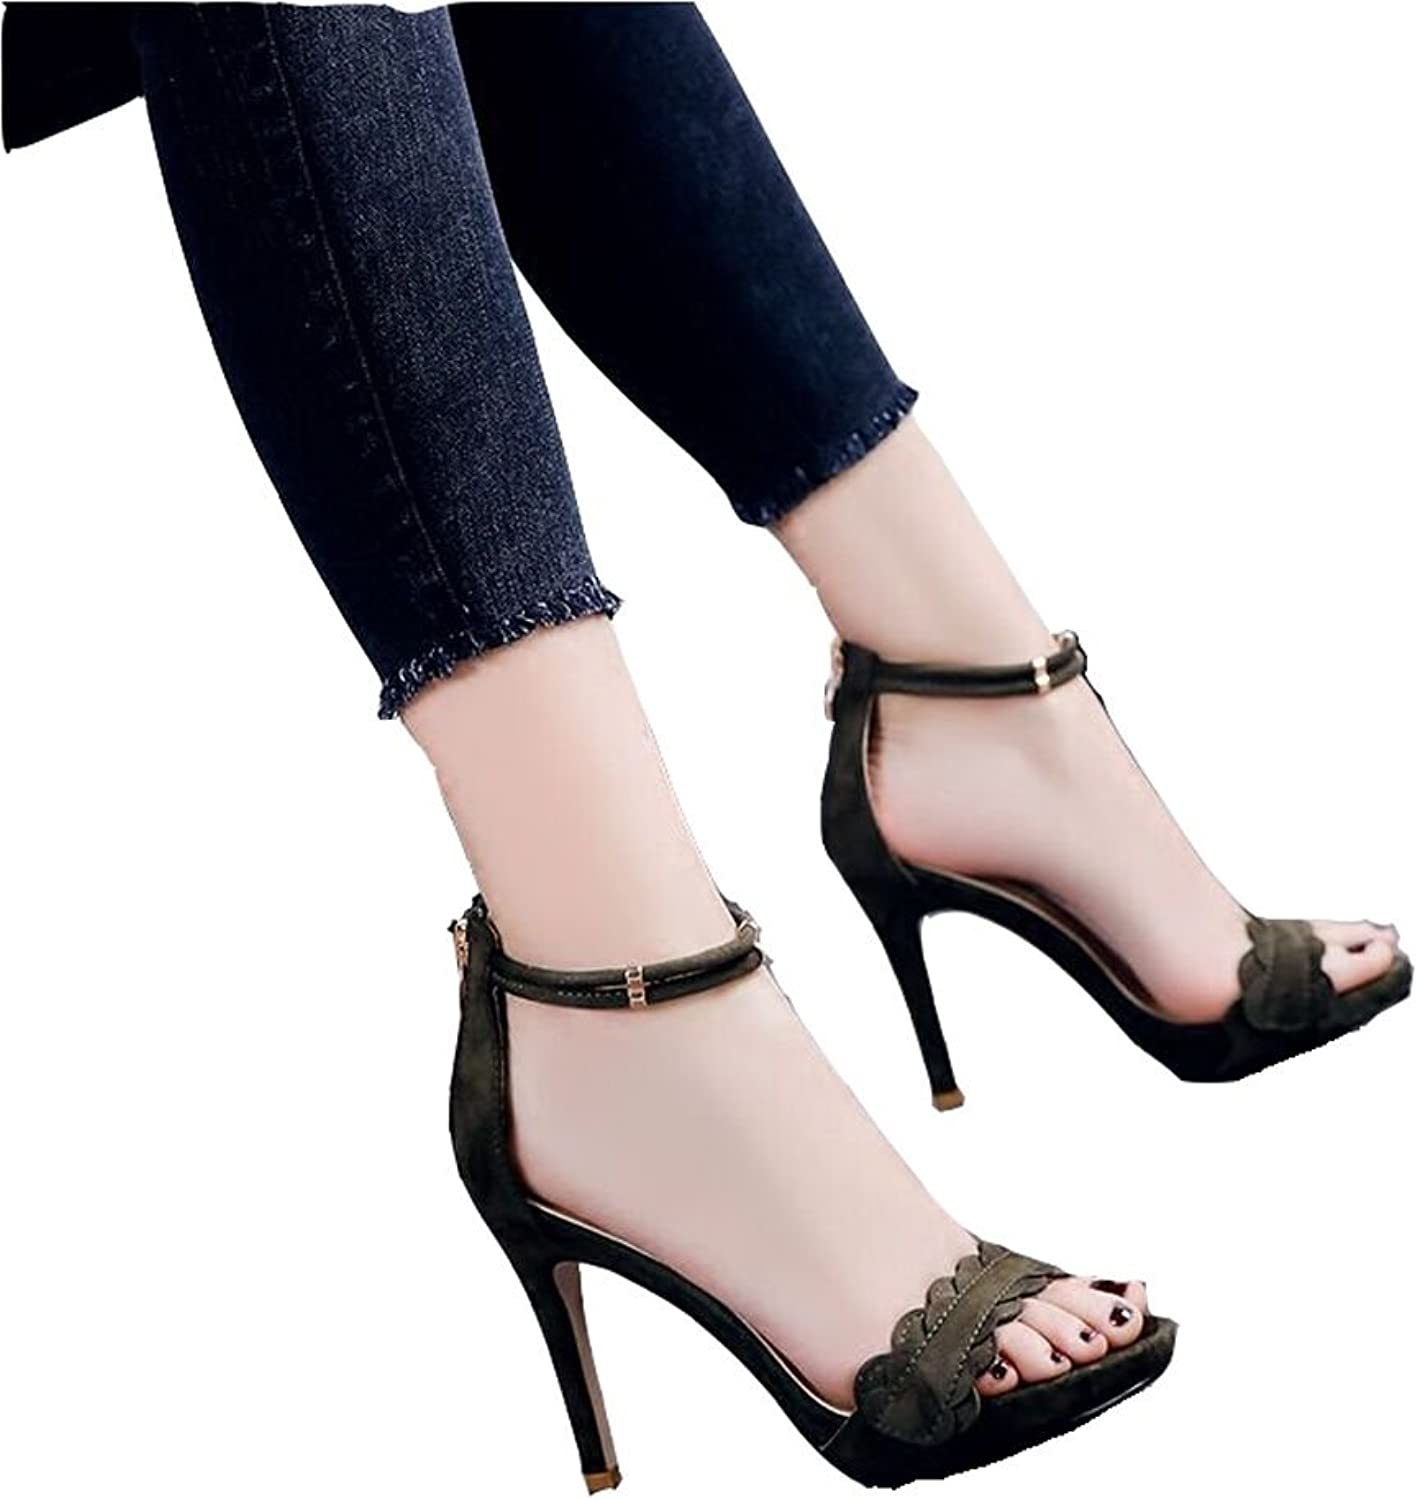 Heels Shoes Faithful Super Sexy High Heels Black Sandals Women 10cm Stiletto Open Toe Ankle Mesh Patent Leather Party Ladies Gladiator Dress Shoes